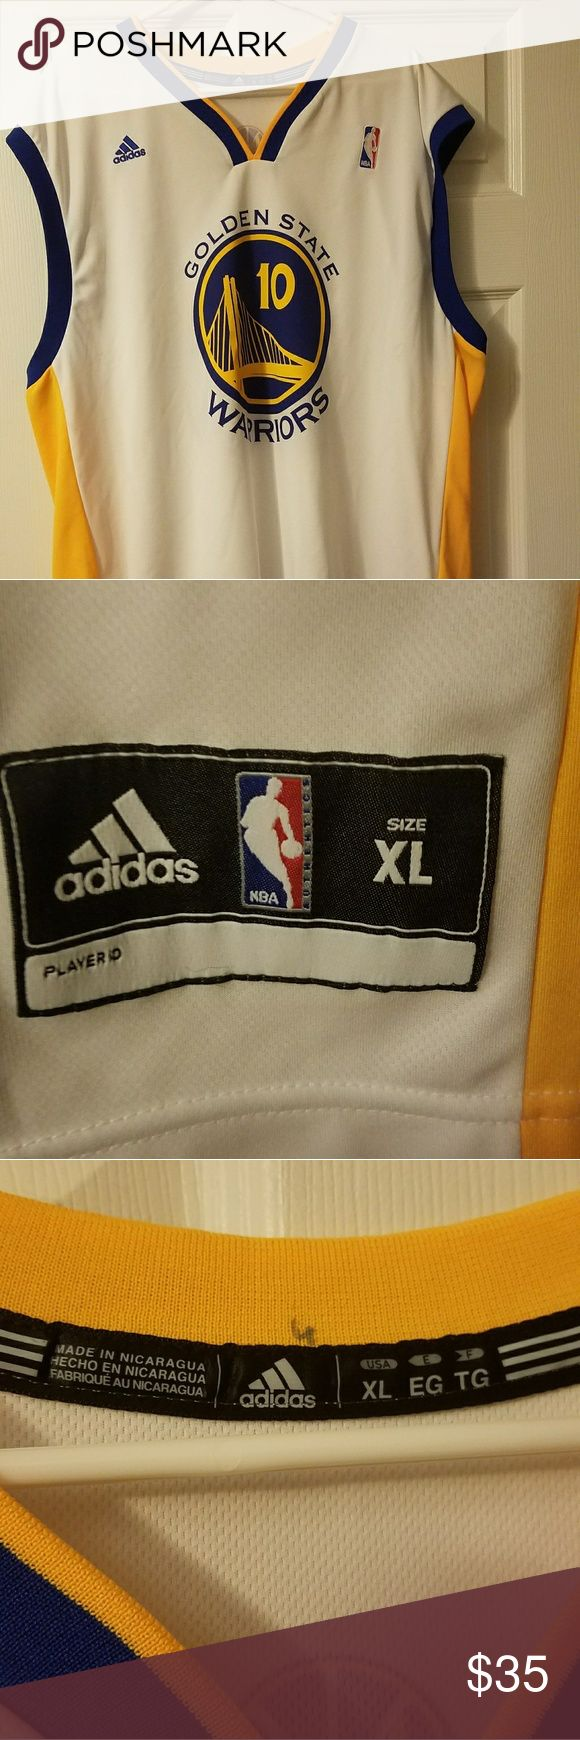 Golden State Warriors David Lee XL jersey I thrifted this item but no longer want it. It appears to be signed by the player but I'm not the original owner so I don't know about its authenticity. adidas Other